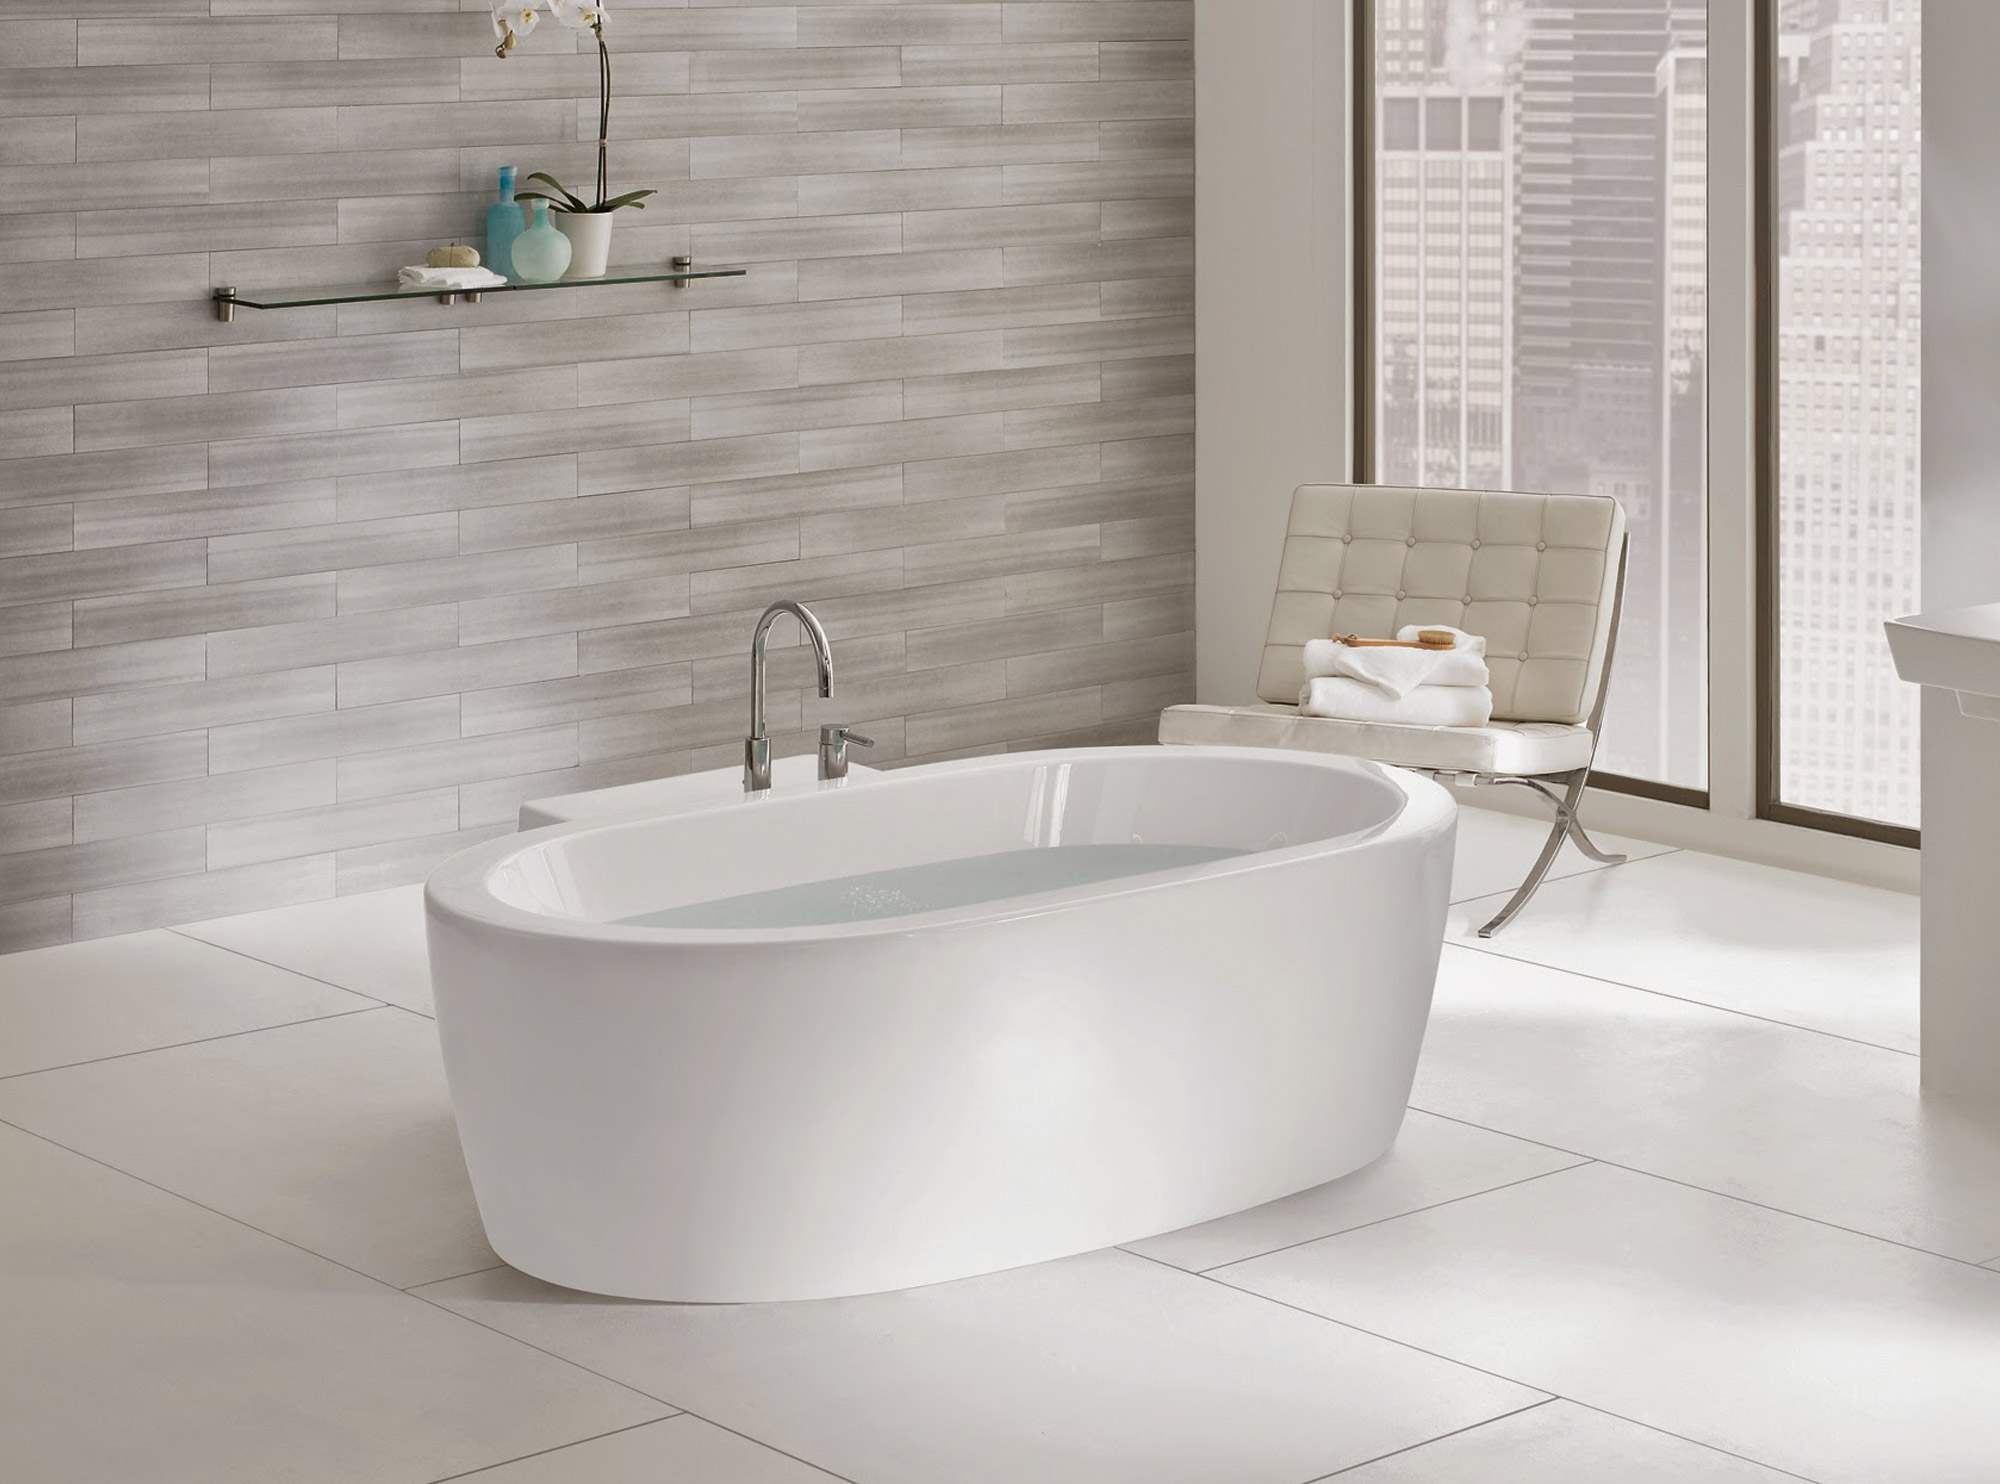 Awesome Give Your Kansas City Bathroom Remodel Design The Attention That It Needs With  Or Maybe It Is As Simple As Replacing Tired And Worn Out Fixtures Whatever The Need, We Remove The Guesswork From Your Bathroom Remodeling Project We